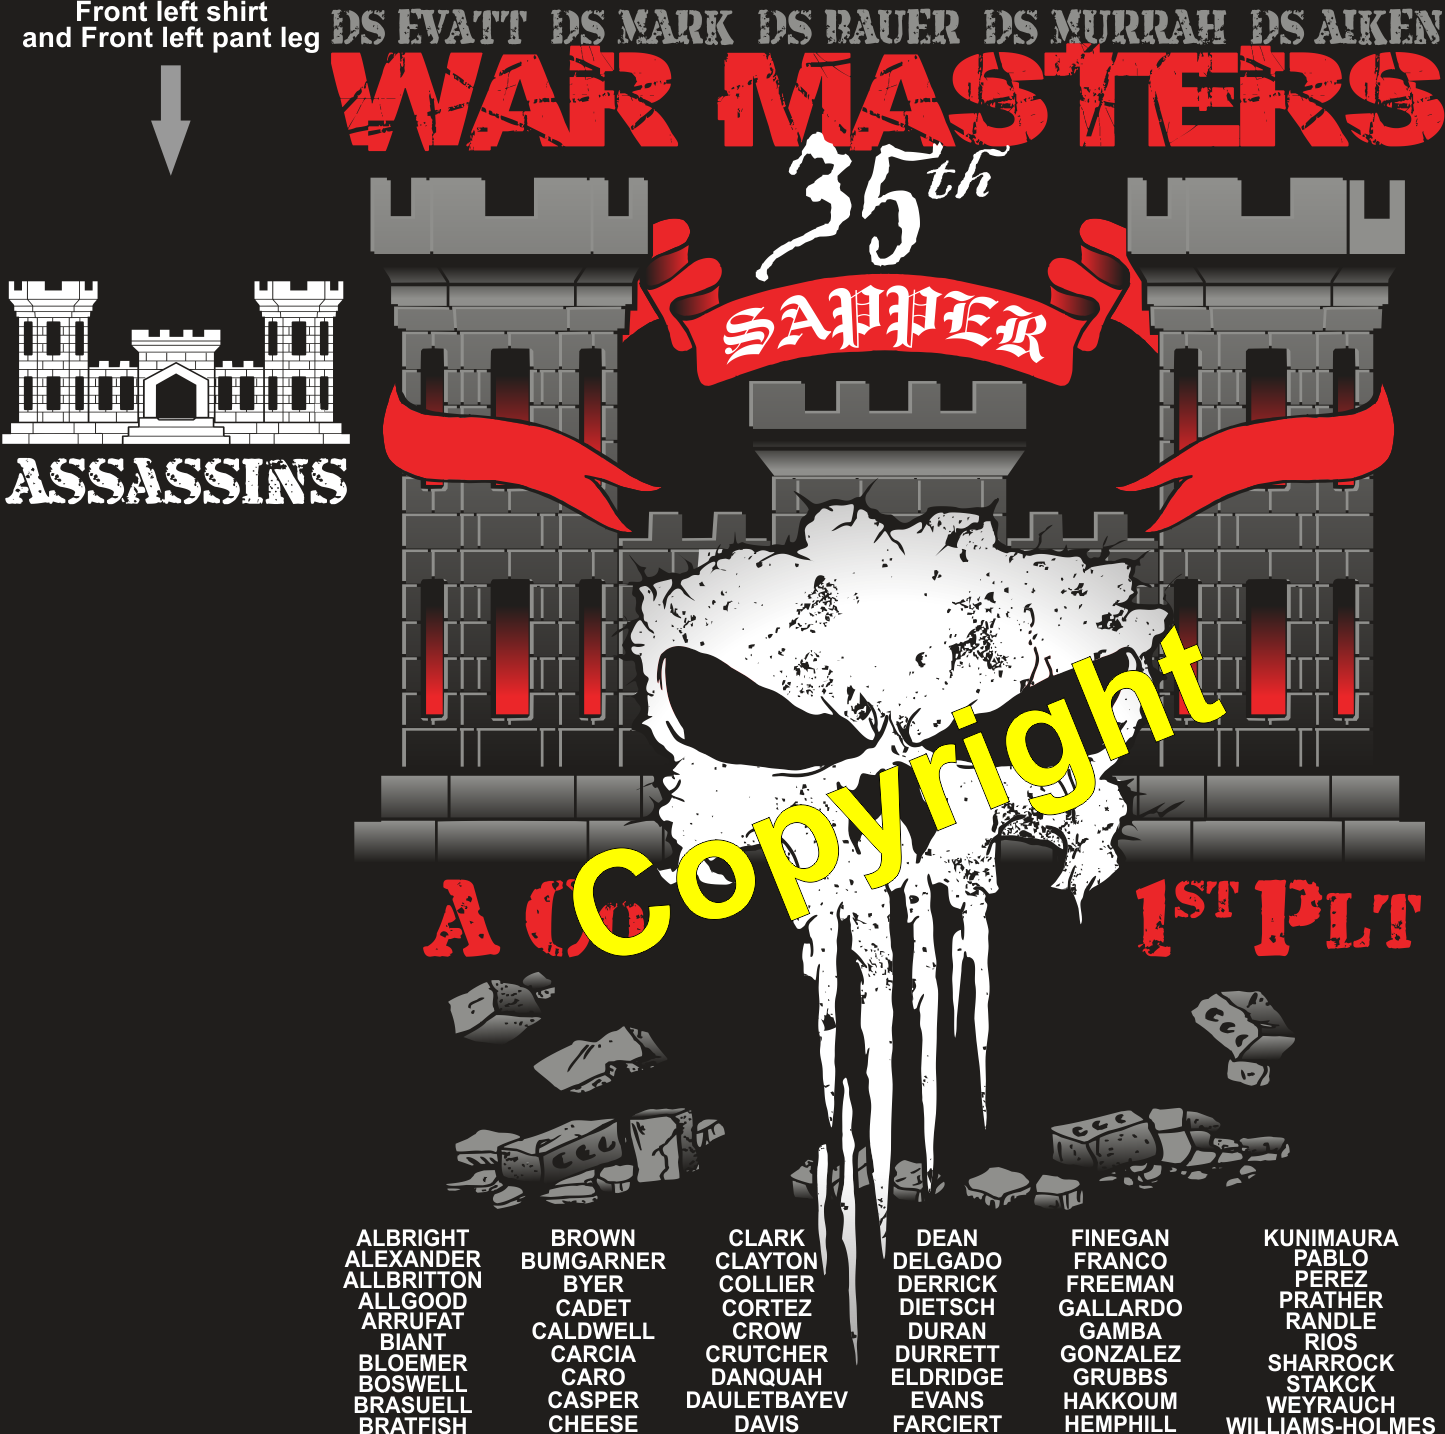 ALPHA 35TH WAR MASTERS GRADUATING DAY 7-26-2019 digital